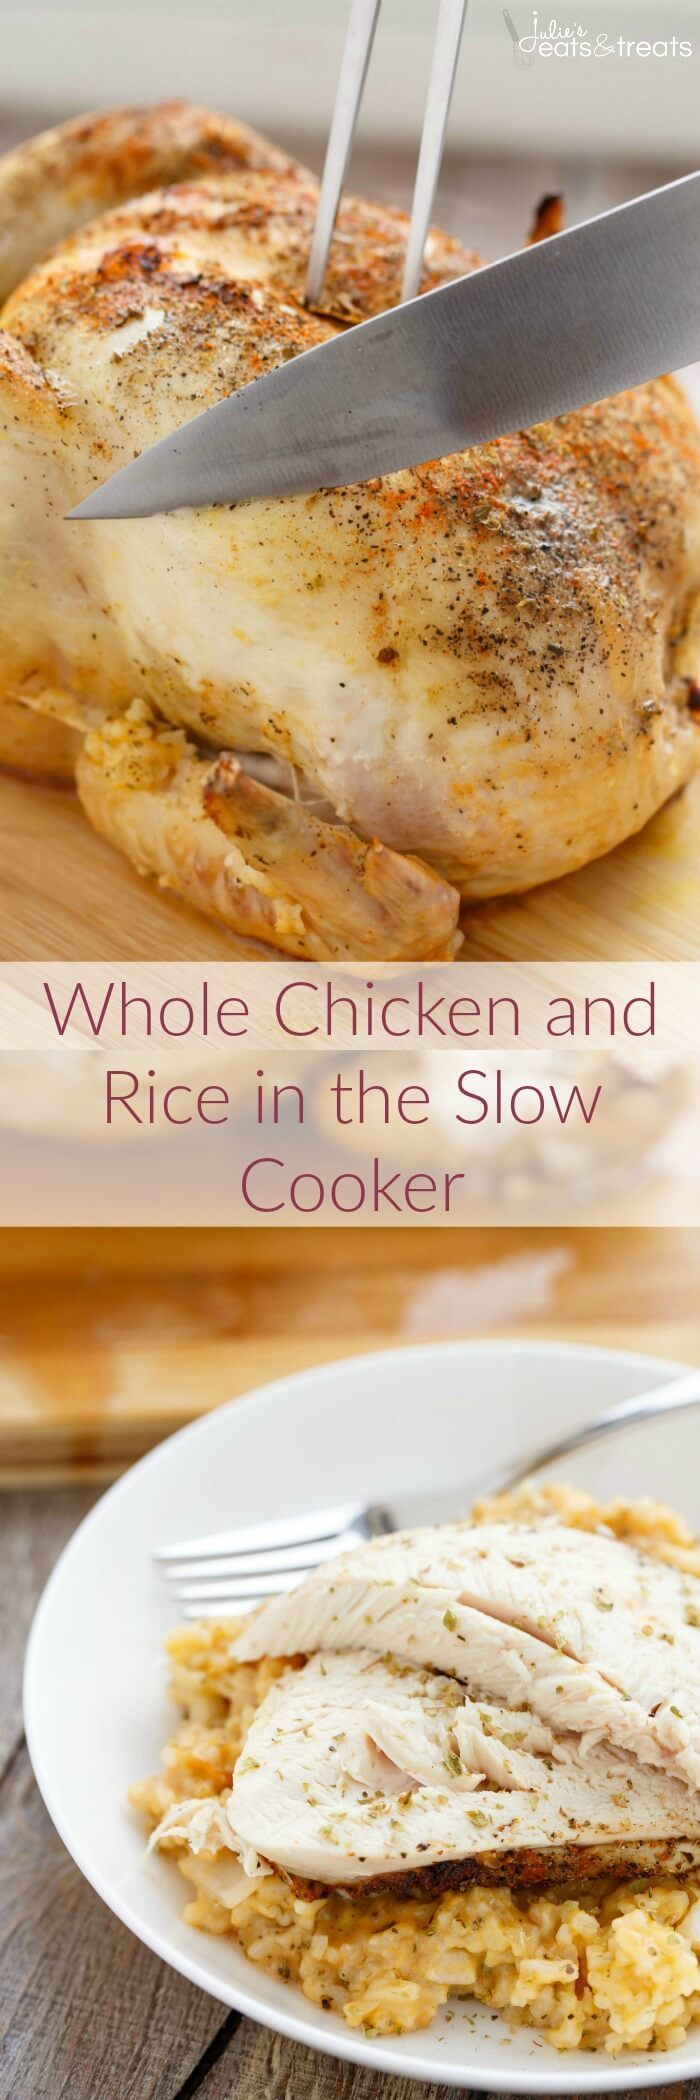 Best 25 Whole Chickens Ideas On Pinterest  Recipe Crock -3992